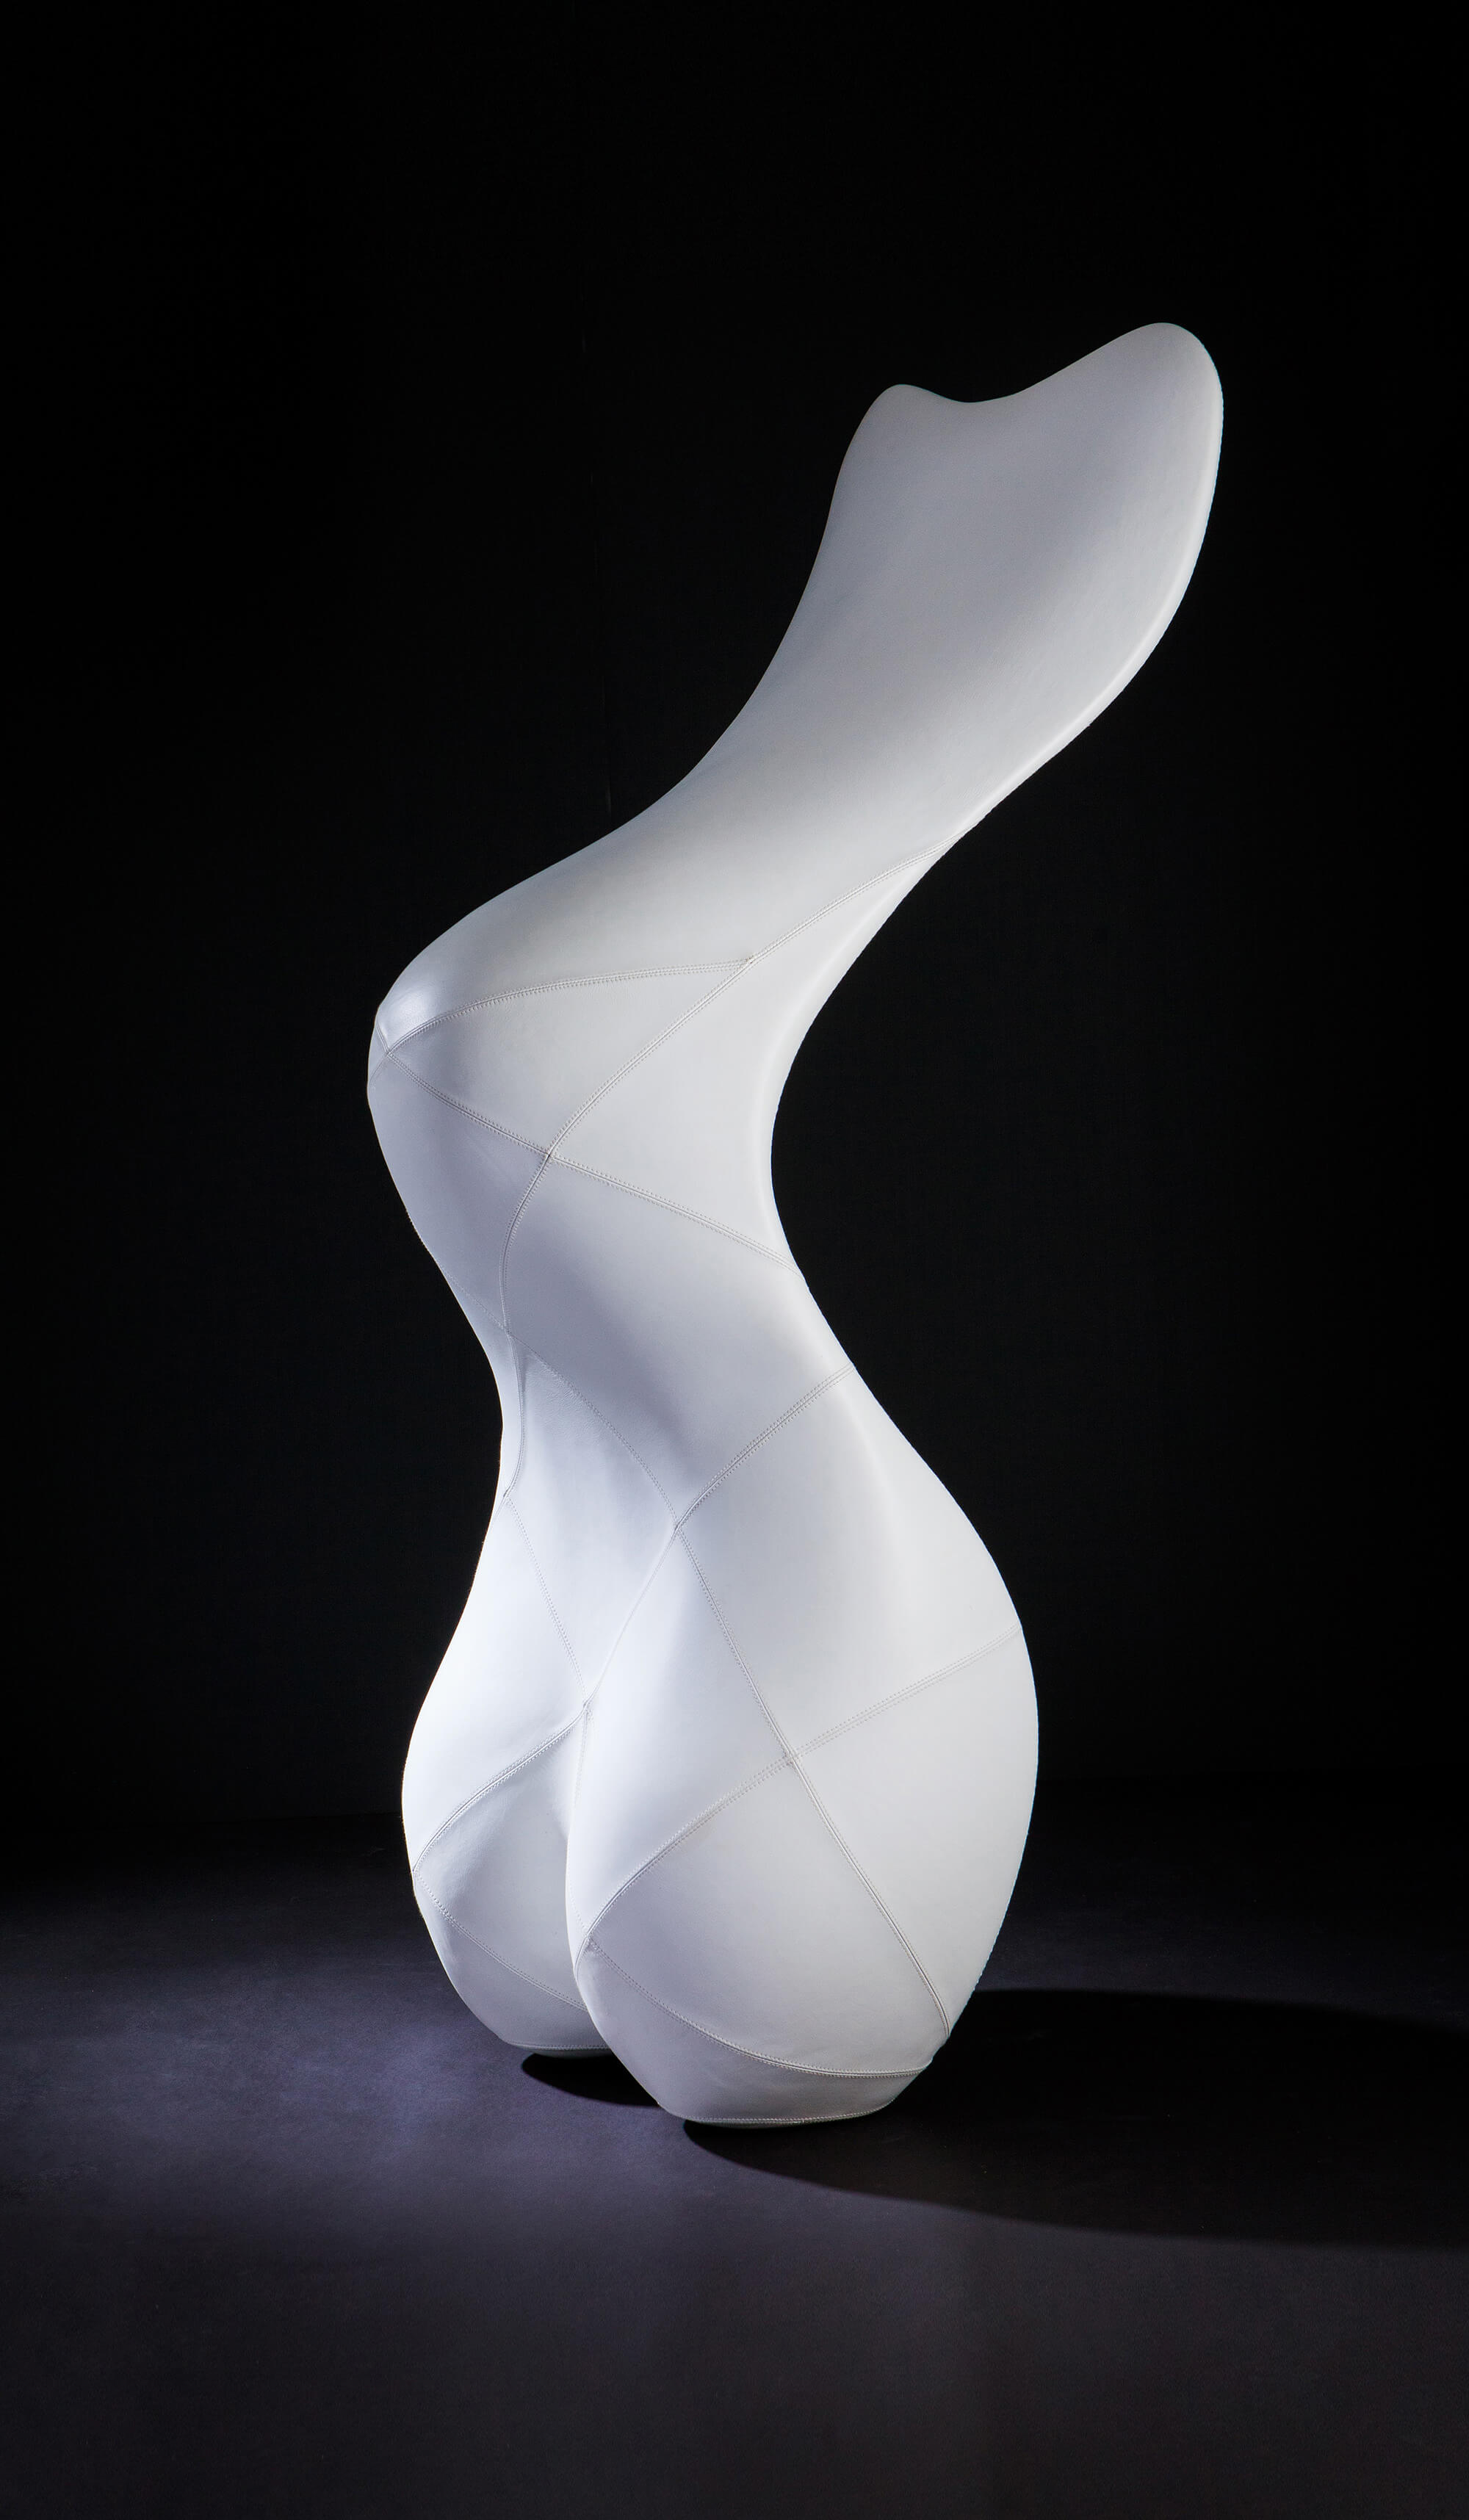 Custom made sculptural chair in white leather by Splinterworks.